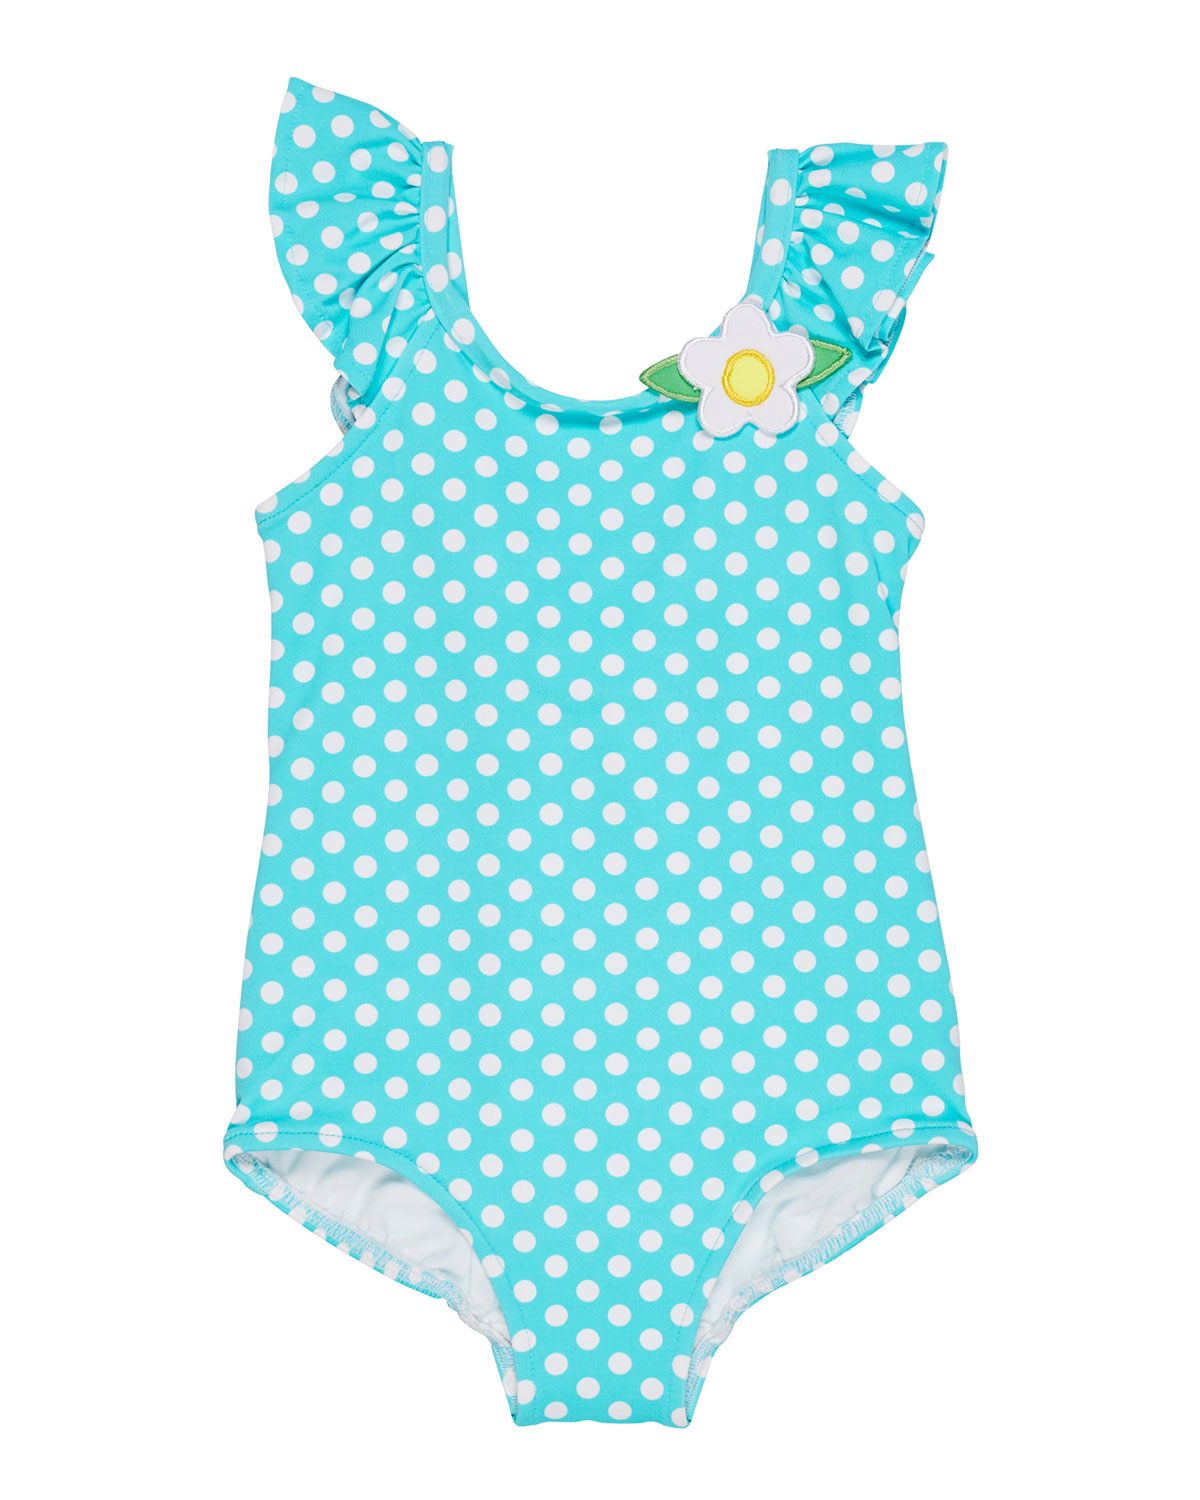 FLORENCE EISEMAN Polka-Dot Ruffle-Sleeves One-Piece Swimsuit, Size 2-4 in Blue